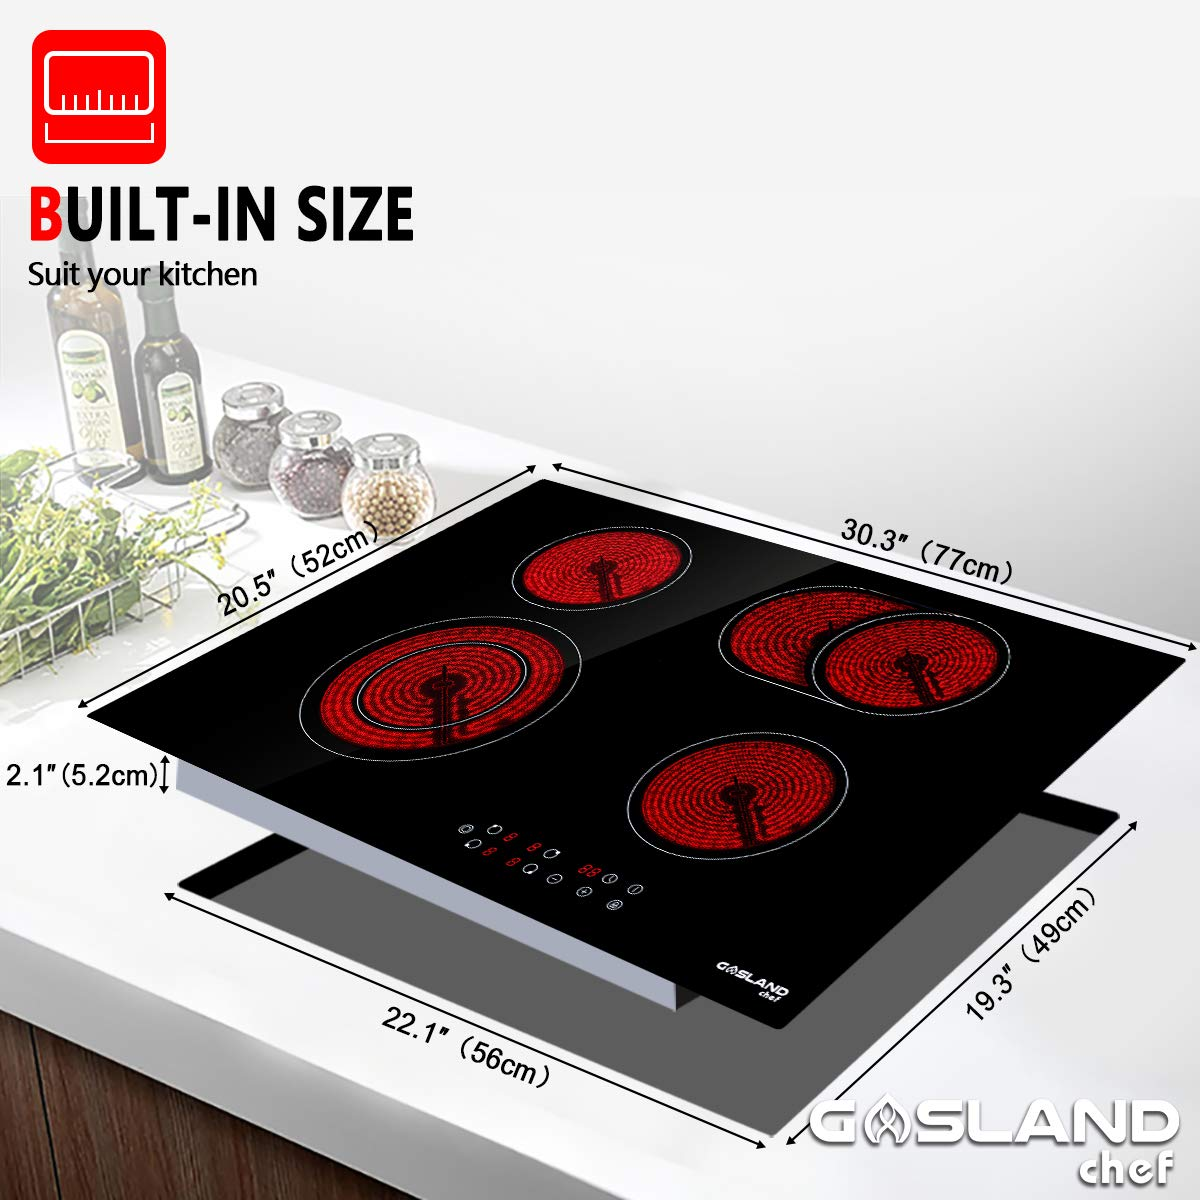 ETL Safety Certified Kids Safety Lock Easy To Clean Electric Cooktop Vitro Ceramic Surface Radiant Electric Cooktop Electric Stove With 4 Burners Gasland chef CH77BF 30 Built-in Electric Stove